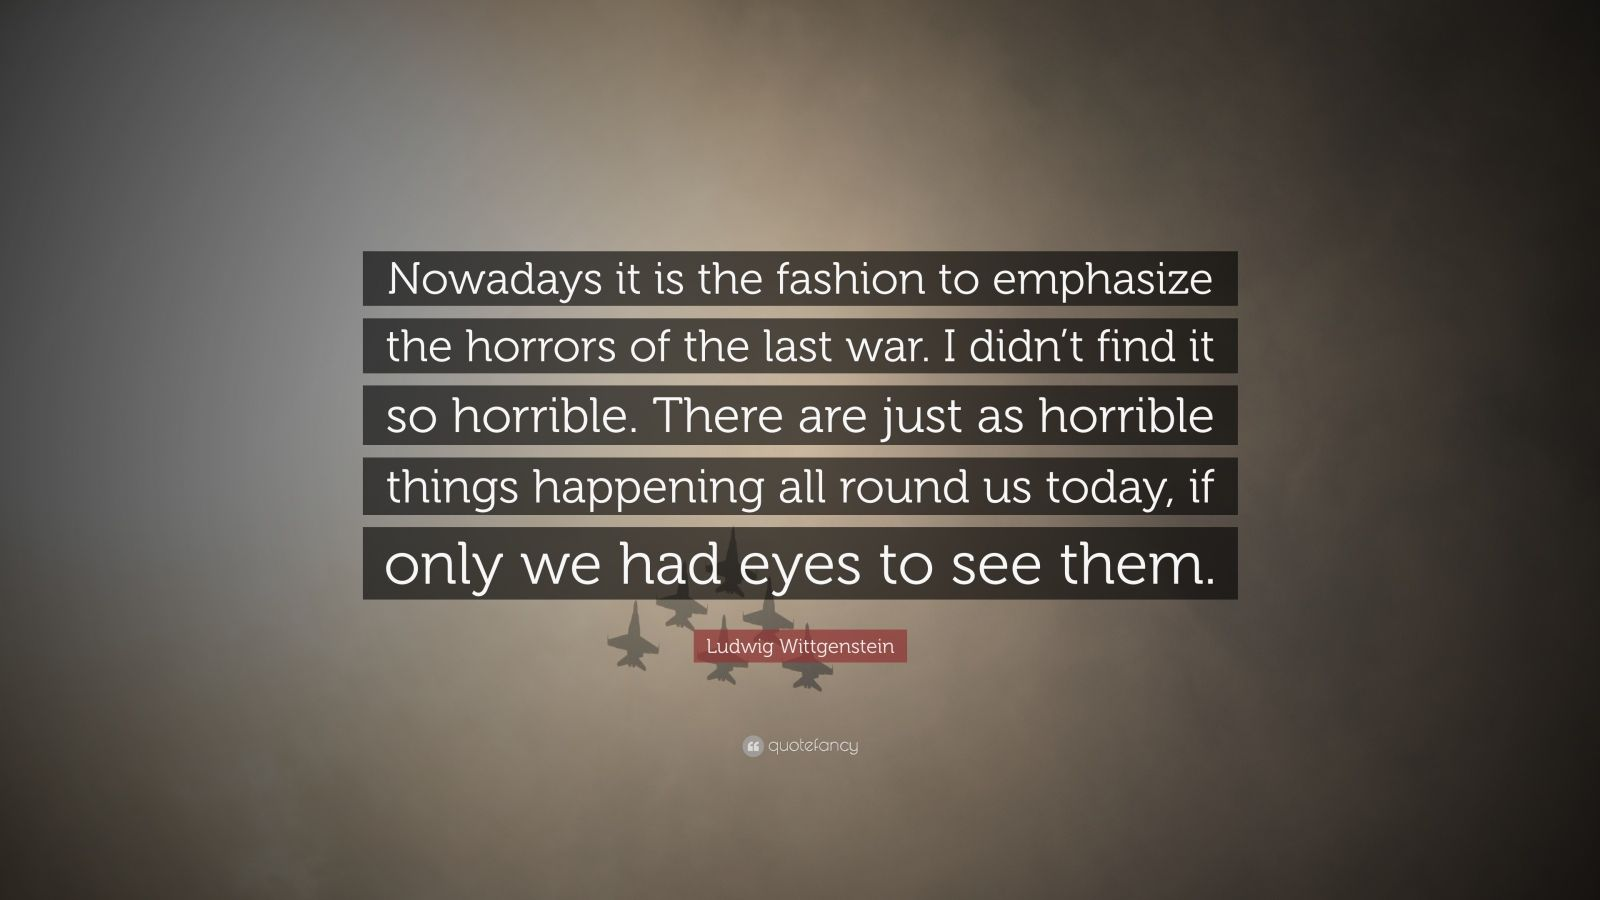 "Ludwig Wittgenstein Quote: ""Nowadays it is the fashion to emphasize the horrors of the last war. I didn't find it so horrible. There are just as horrible things happening all round us today, if only we had eyes to see them."""